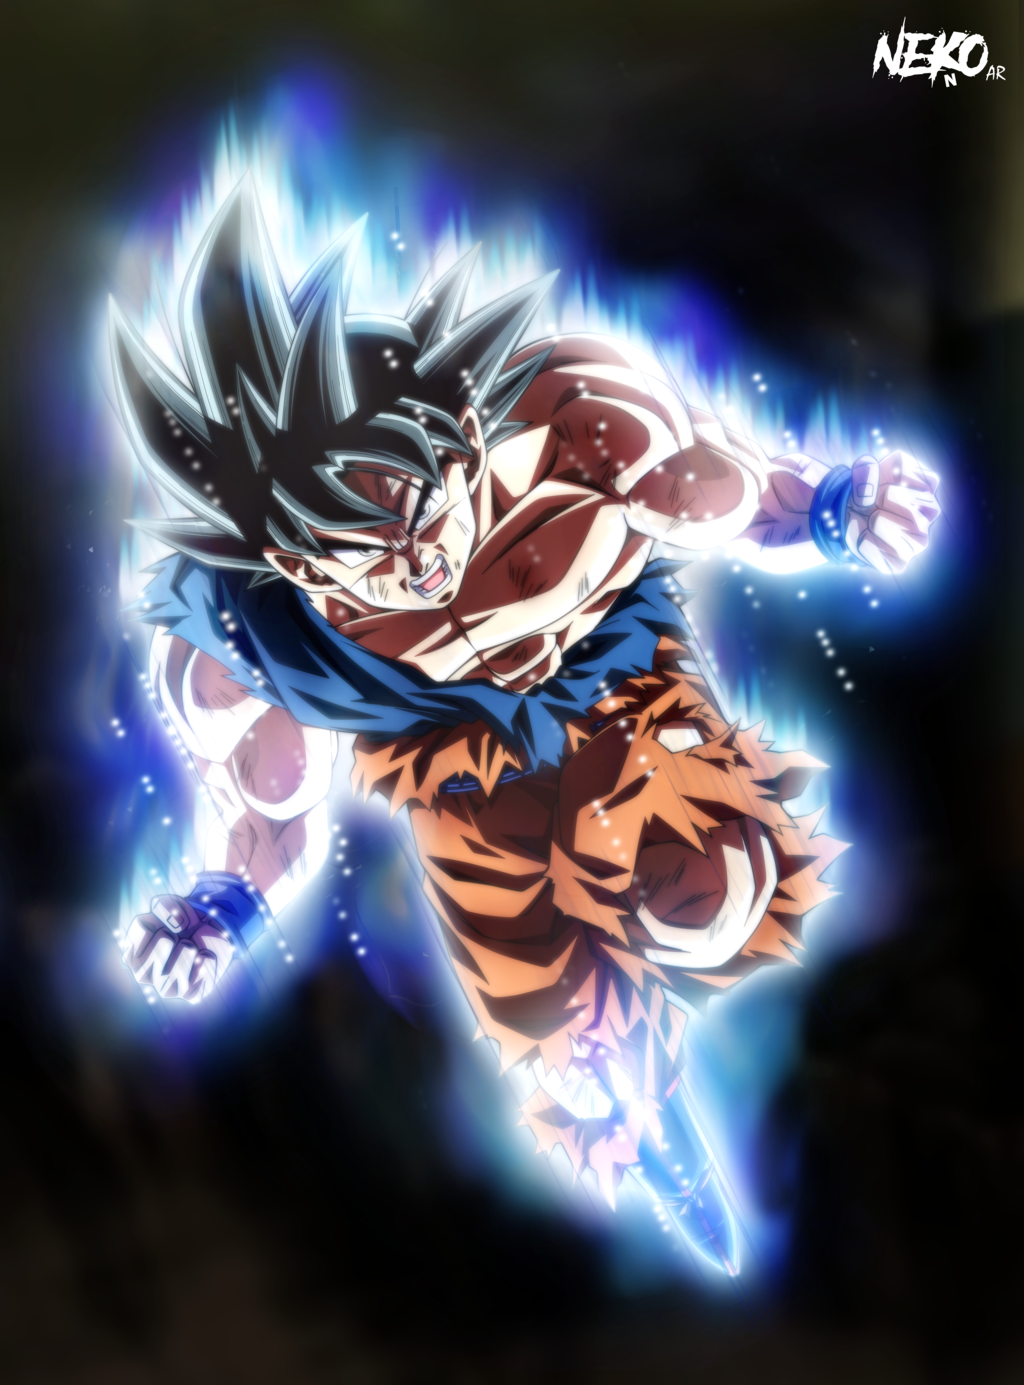 11 Ultra Instinct Goku Wallpaper 4k Download Personajes De